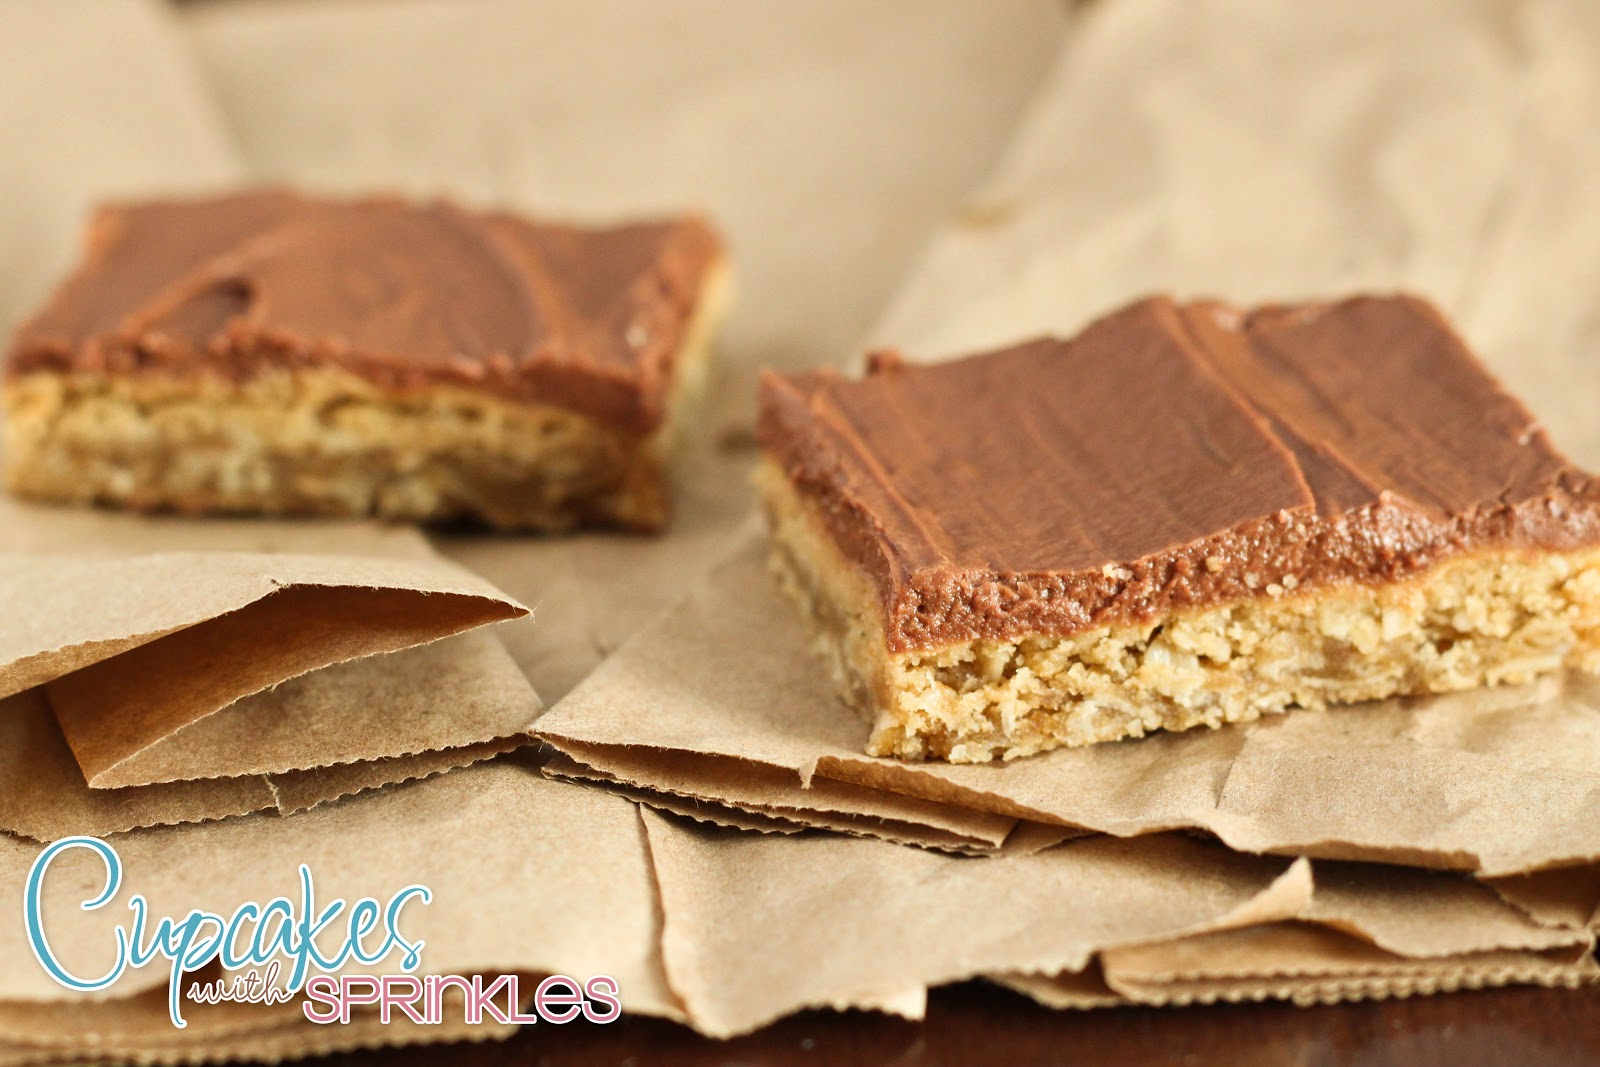 Cupcakes with Sprinkles: Peanut Butter Bars